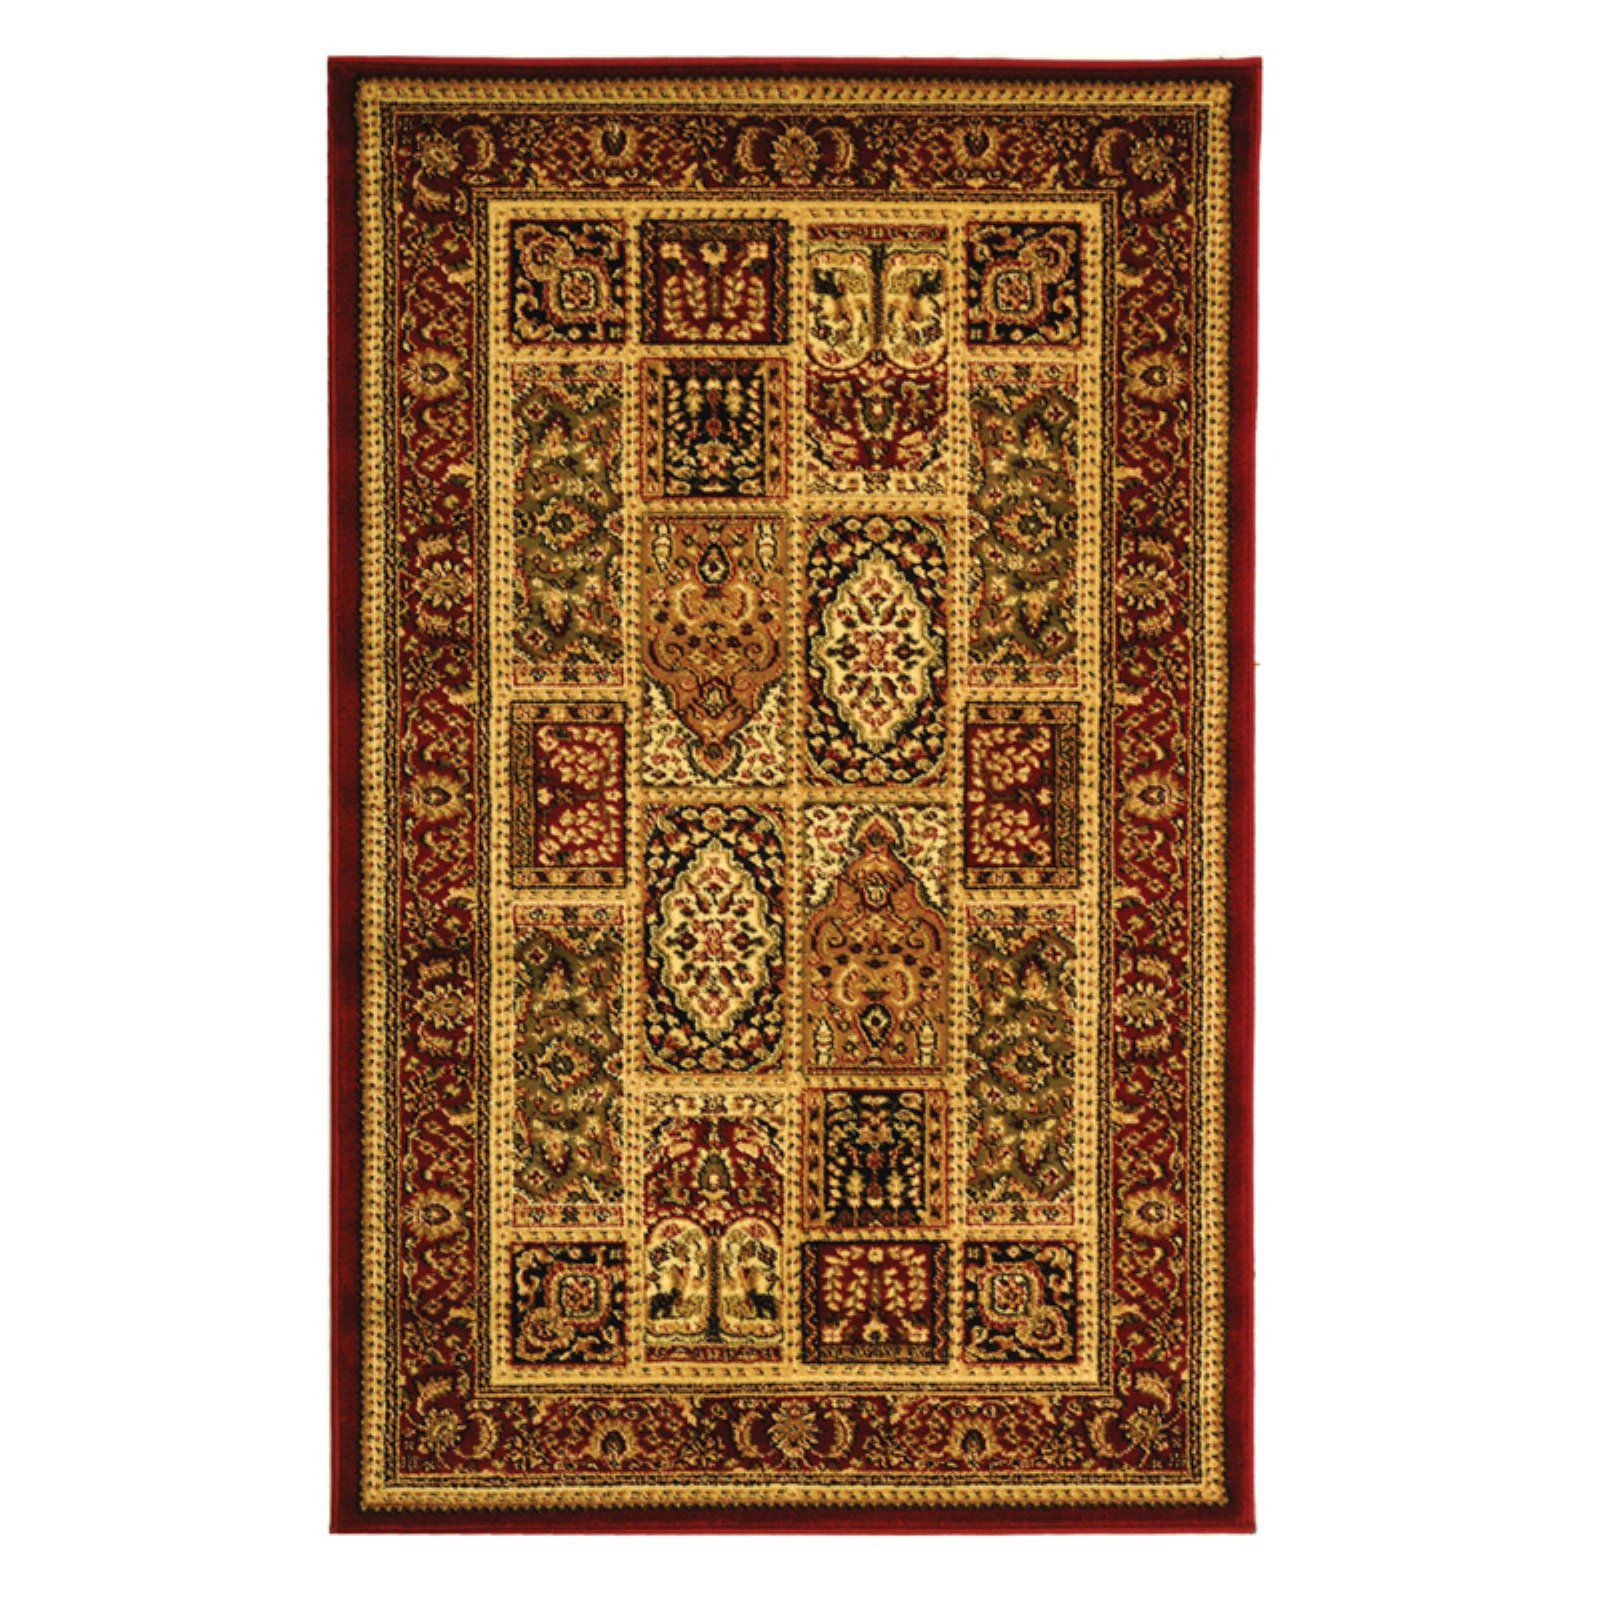 Safavieh Lyndhurst Lnh217b Area Rug Red Red Area Rugs Traditional Area Rugs Colorful Rugs